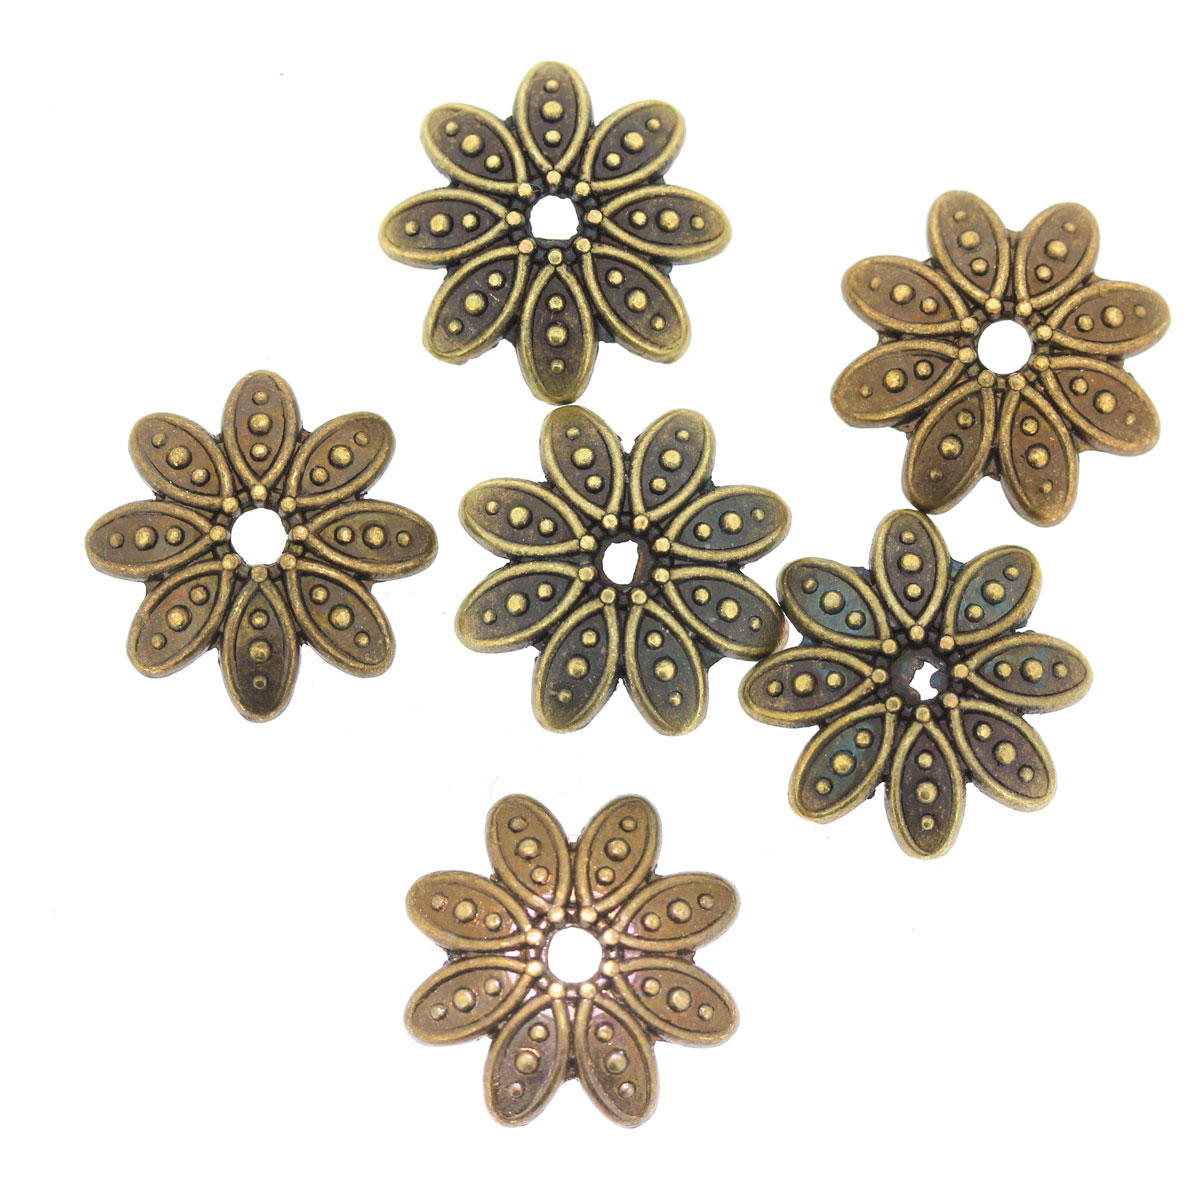 Antique Gold Flower Bead Cap